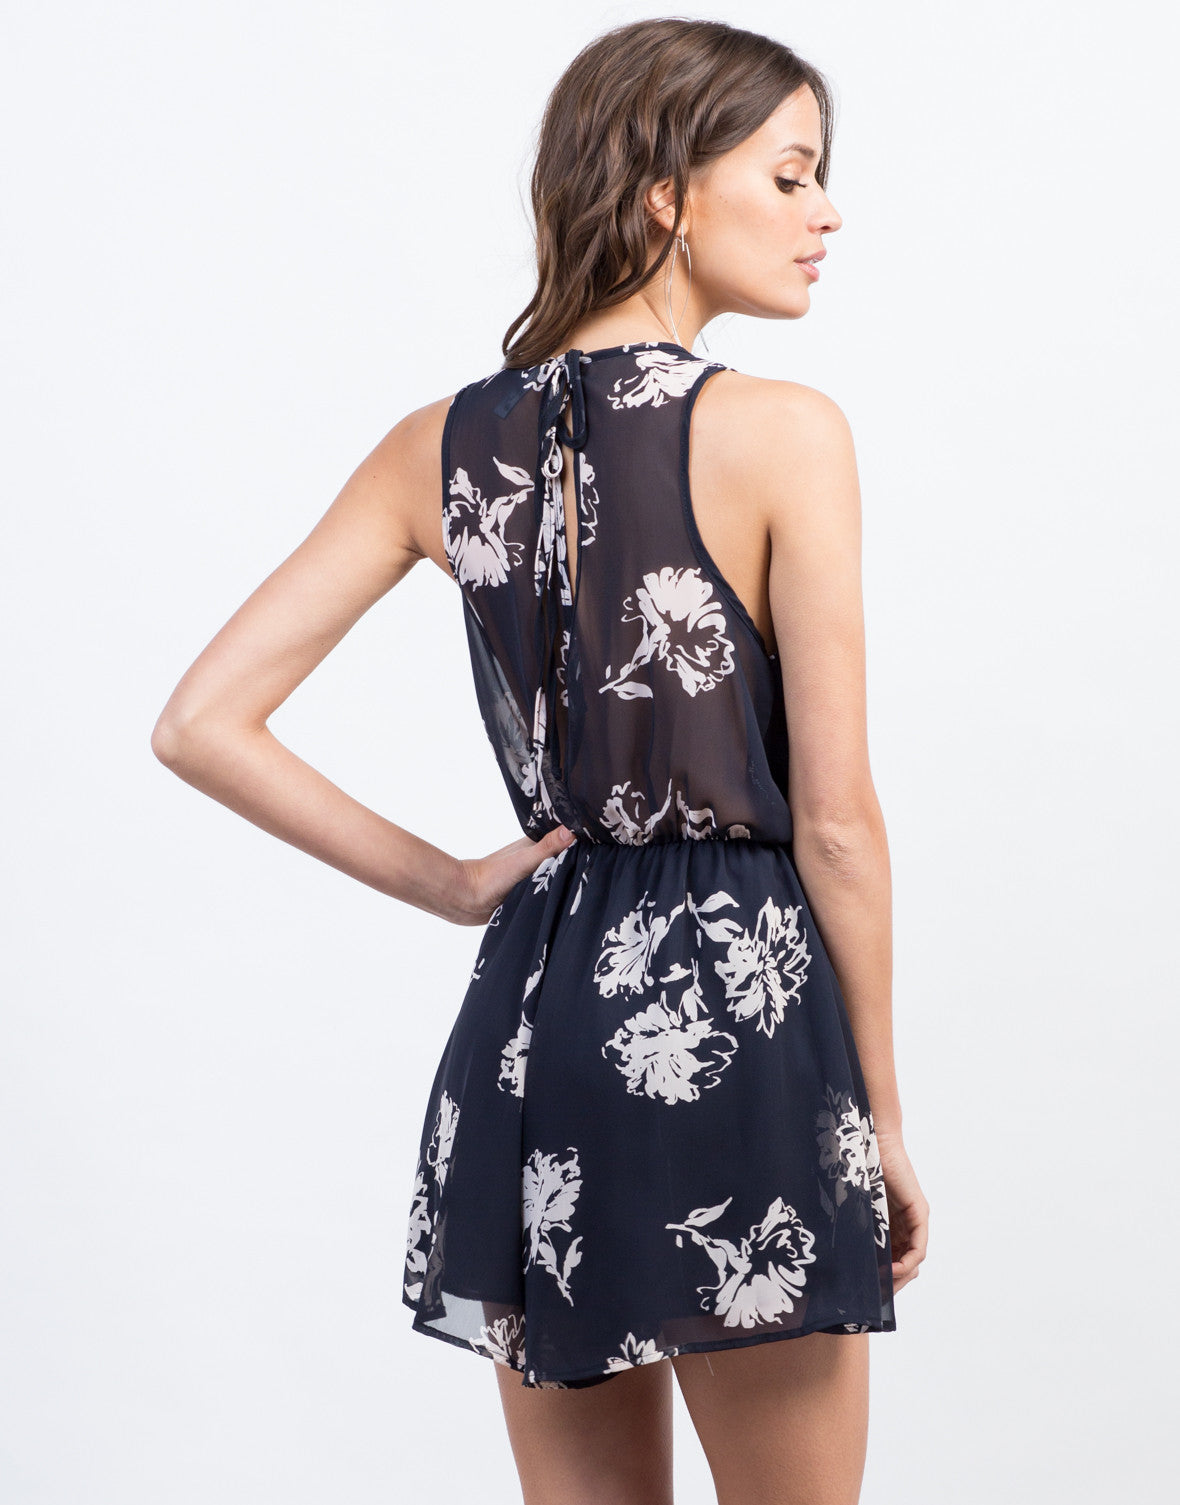 Back View of Back View of Soft Floral Chiffon Romper